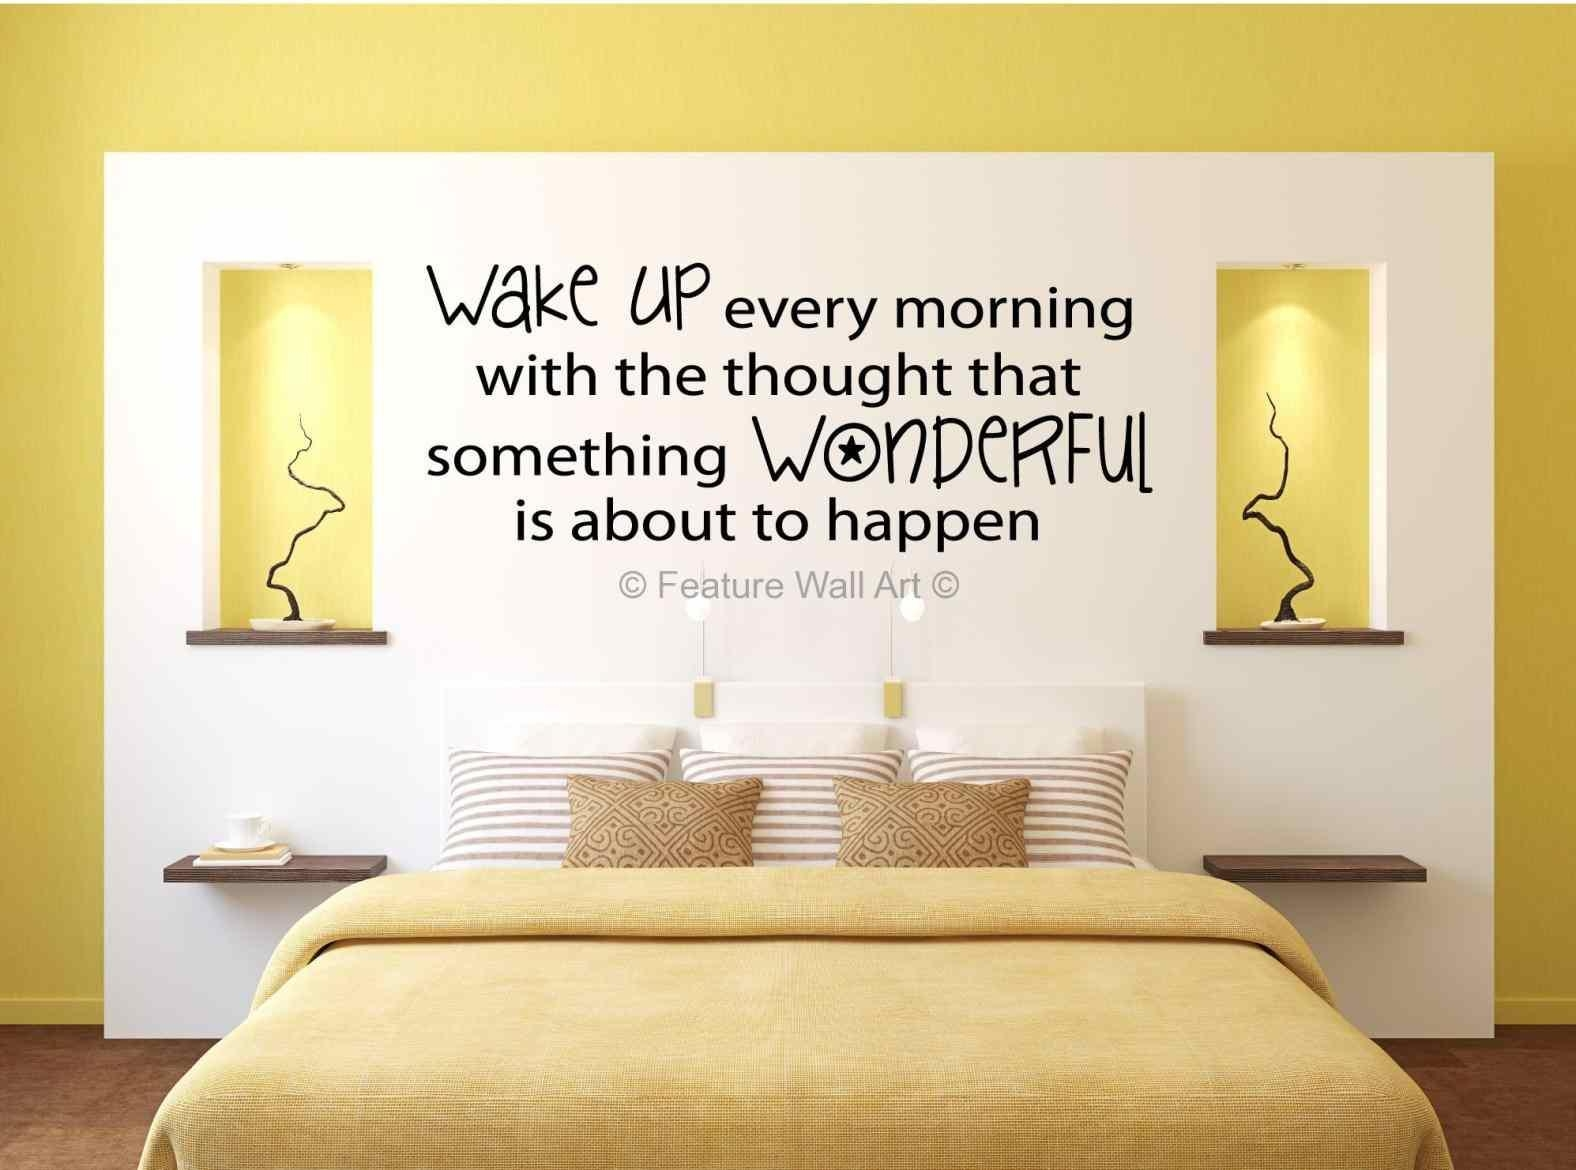 Tumblr Rooms With Quotes On Walls | Datenlabor Regarding Coco Chanel Wall Stickers (Image 17 of 20)